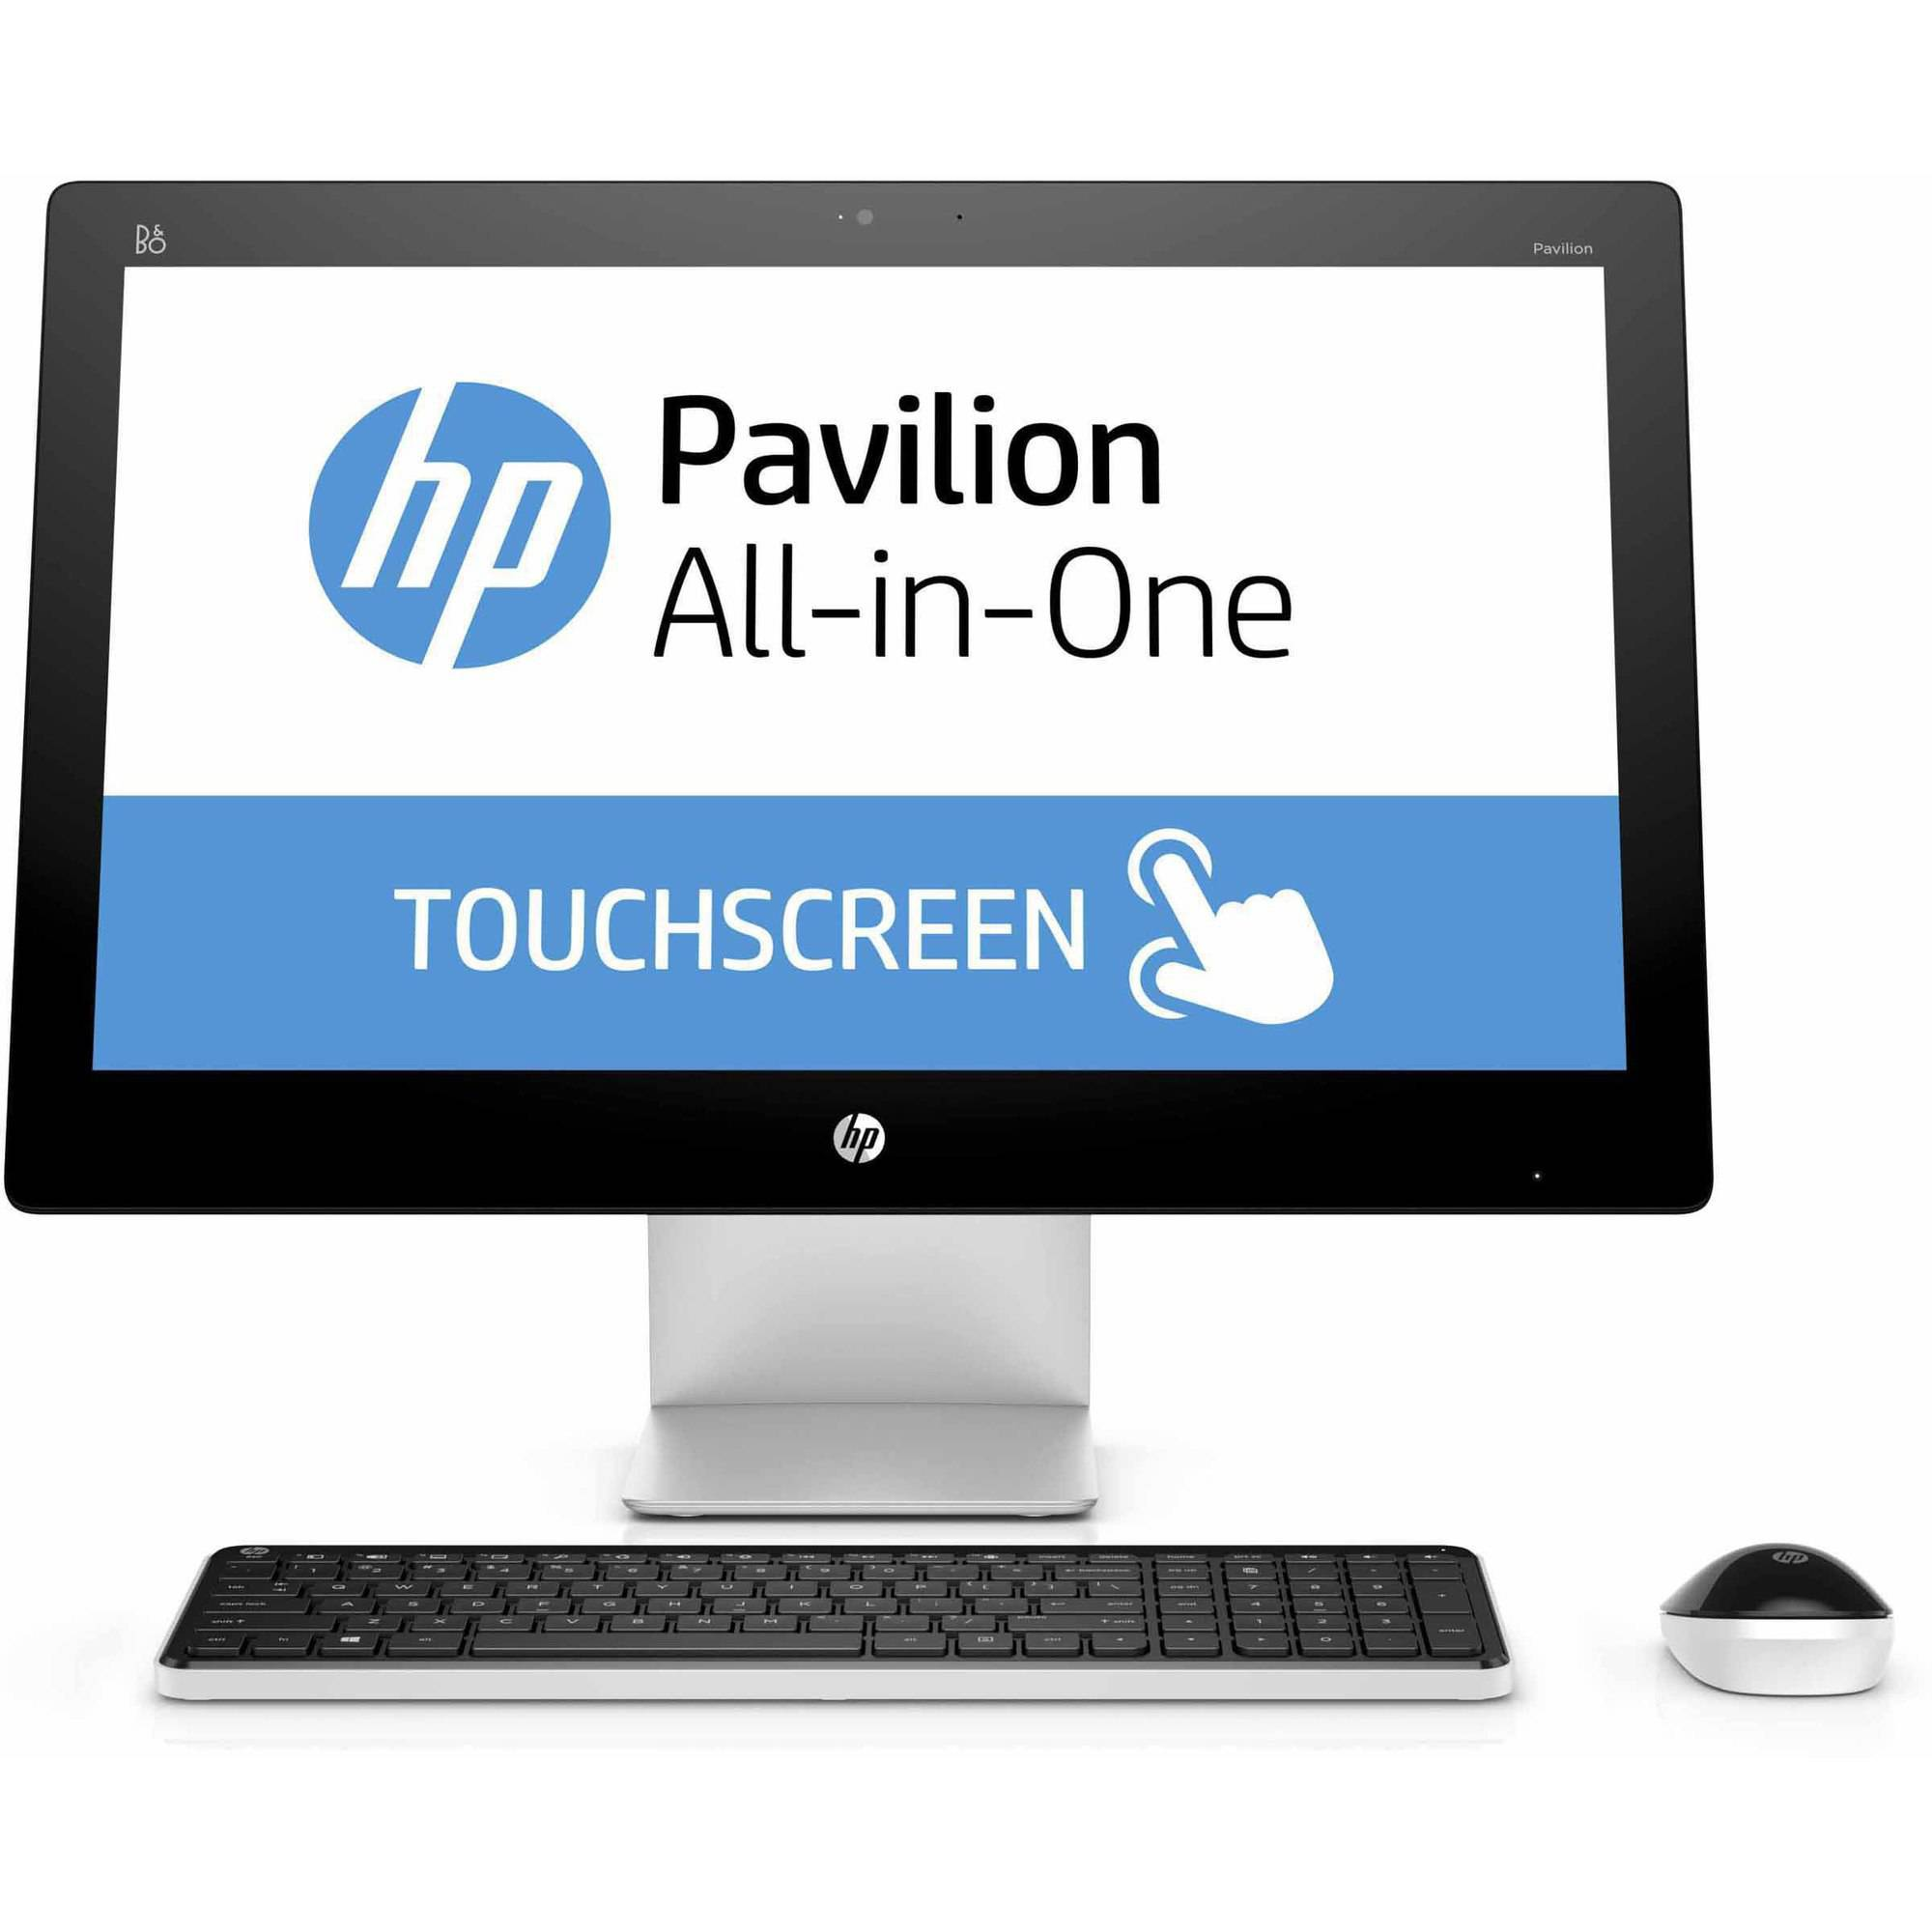 "HP Pavilion 23-q113w All-in-One Desktop PC with Intel Core i3-4170T Processor, 6GB Memory, 23"" touch screen, 1TB Hard Drive and Windows 10 Home"